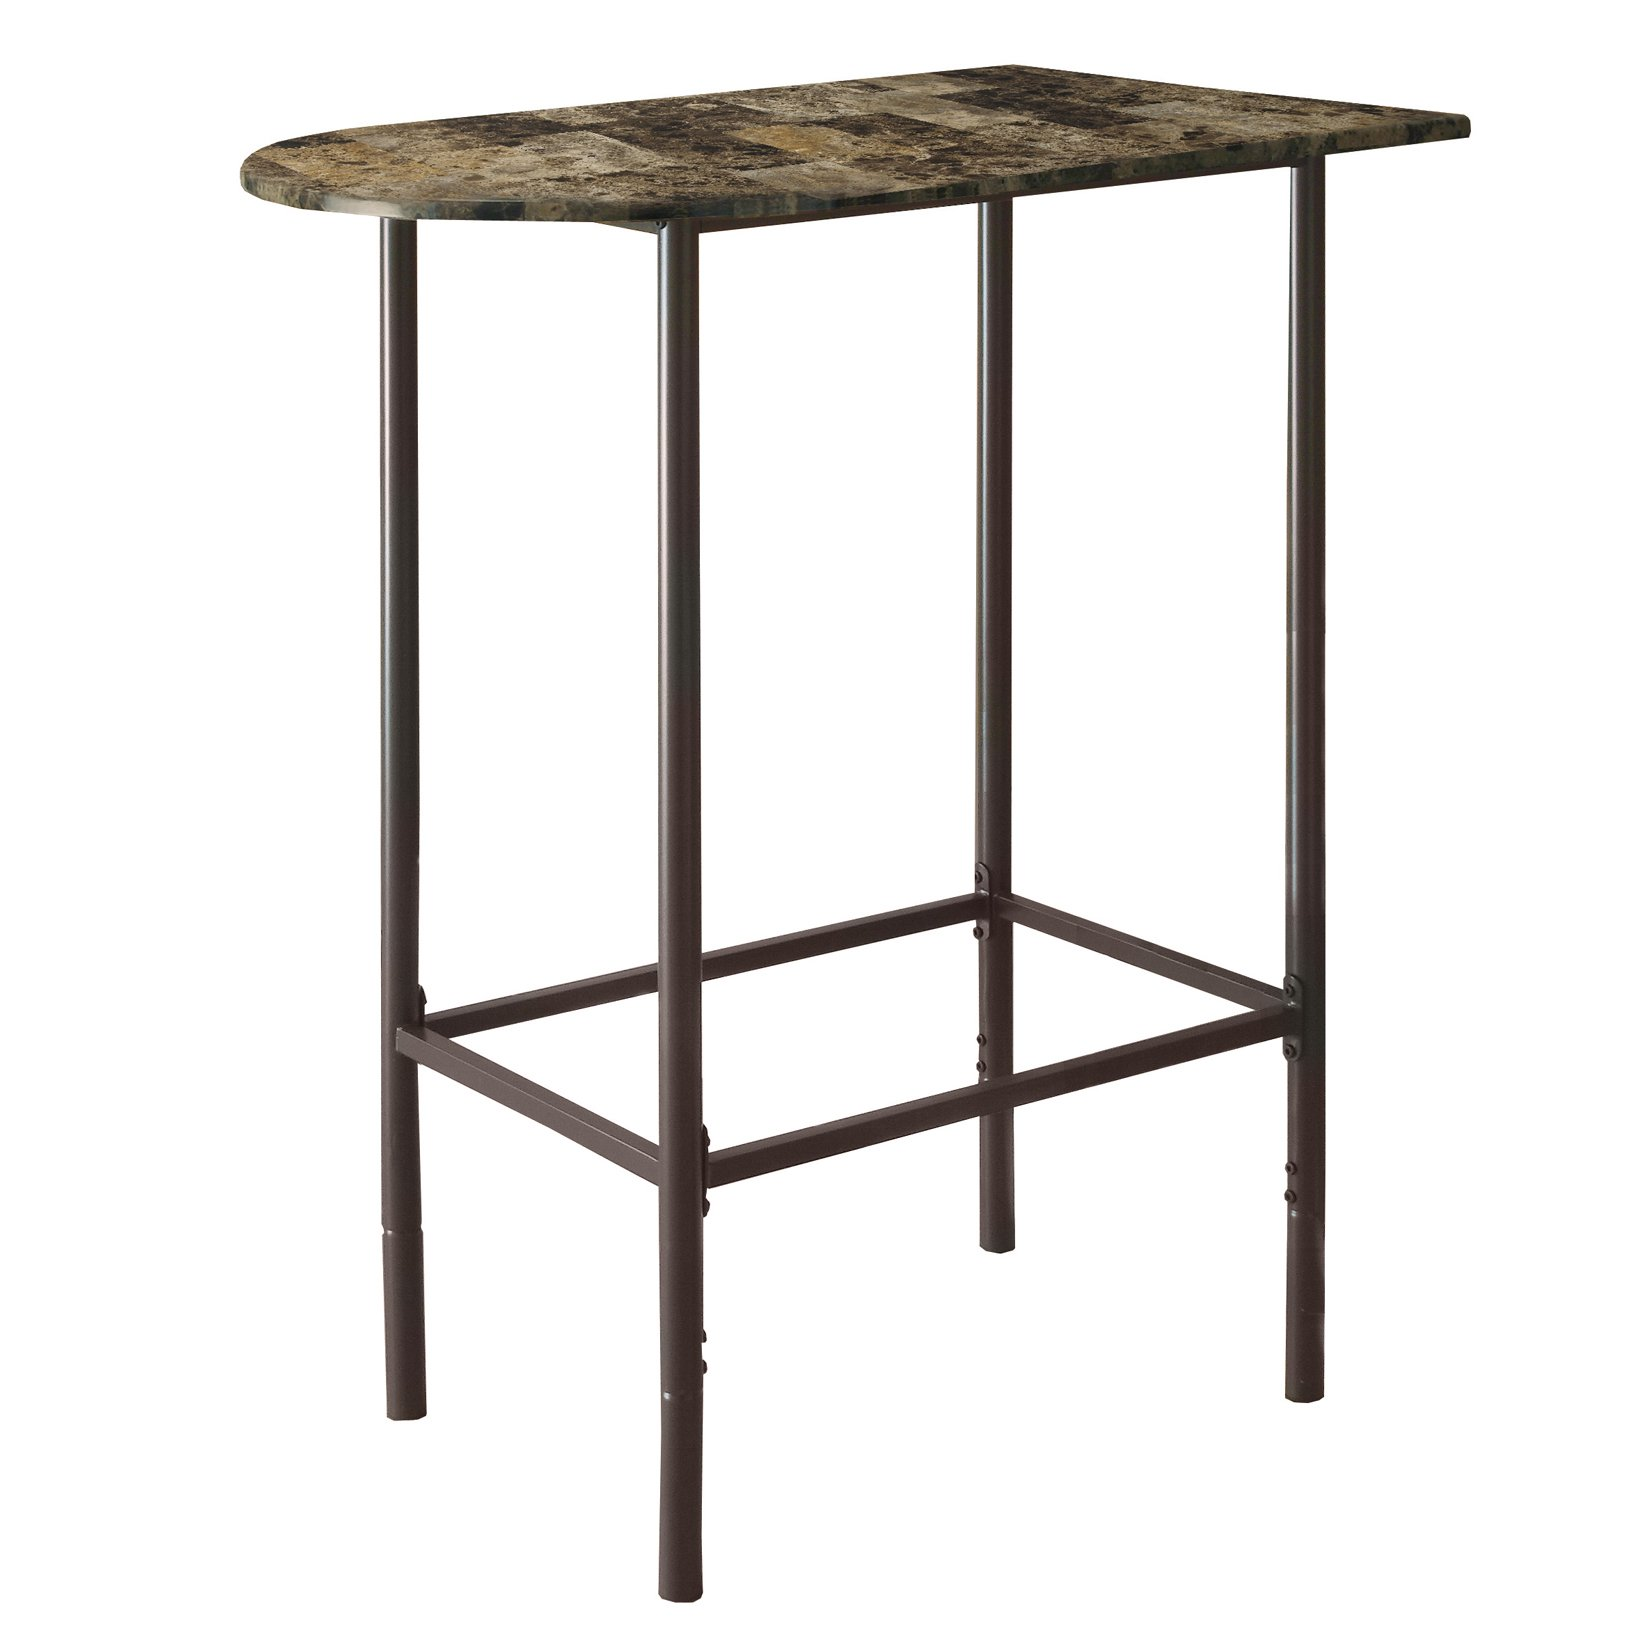 Monarch Specialties Metal Space Saver Bar, 24-Inch by 36-Inch, Cappuccino/Marble/Coffee